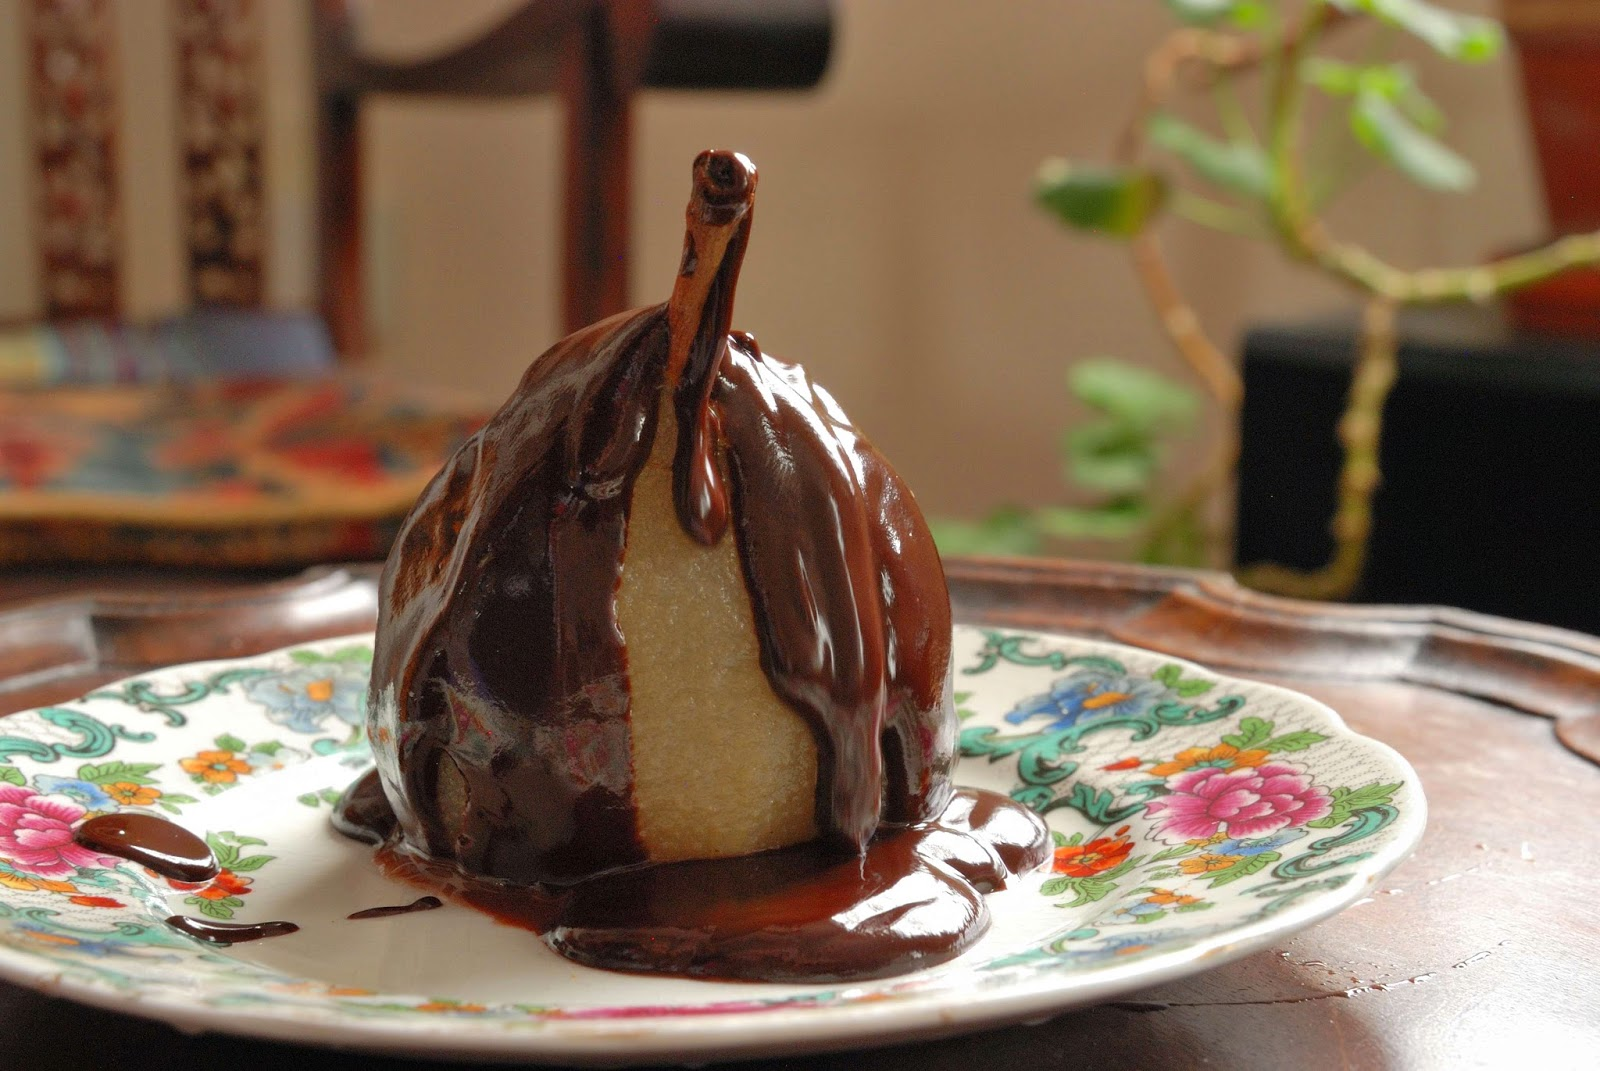 simple recipe to poach pear and make chocolate sauce